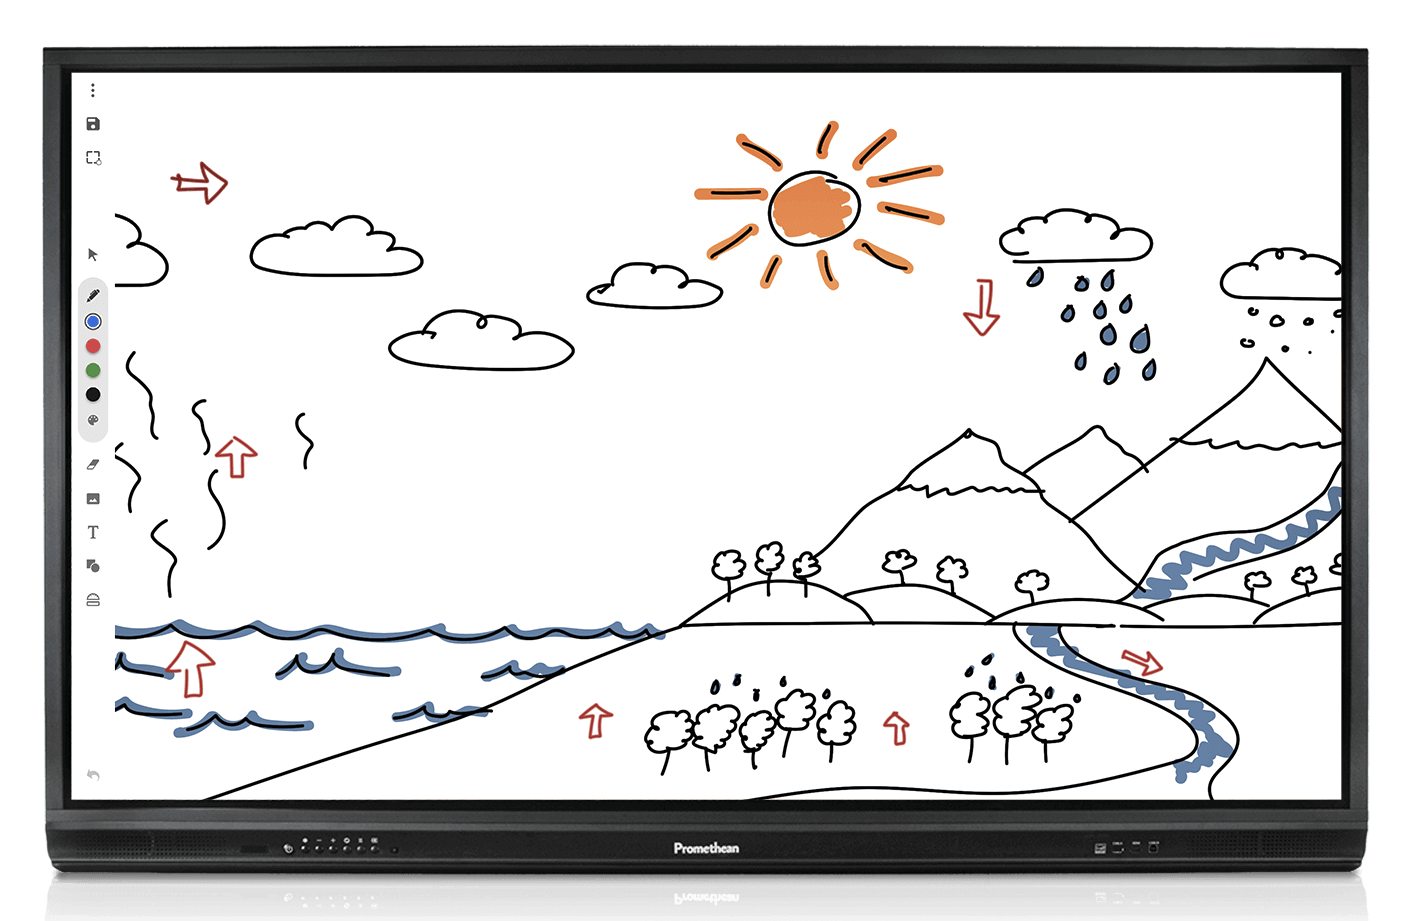 Image of the whiteboard on a smart board